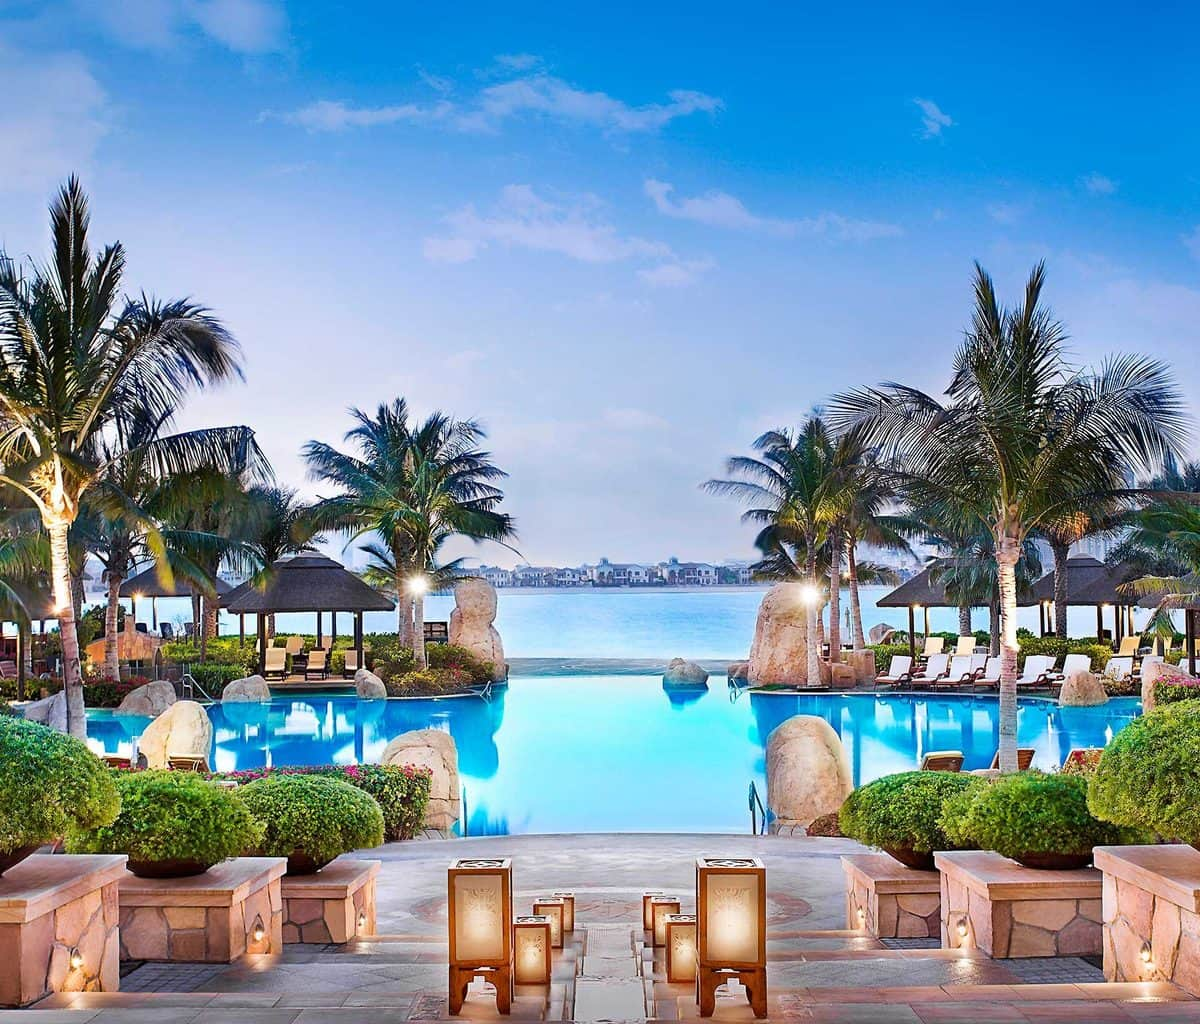 Looking out across the swimming pool to the Arabian Gulf at Sofitel Dubai The Palm Resort